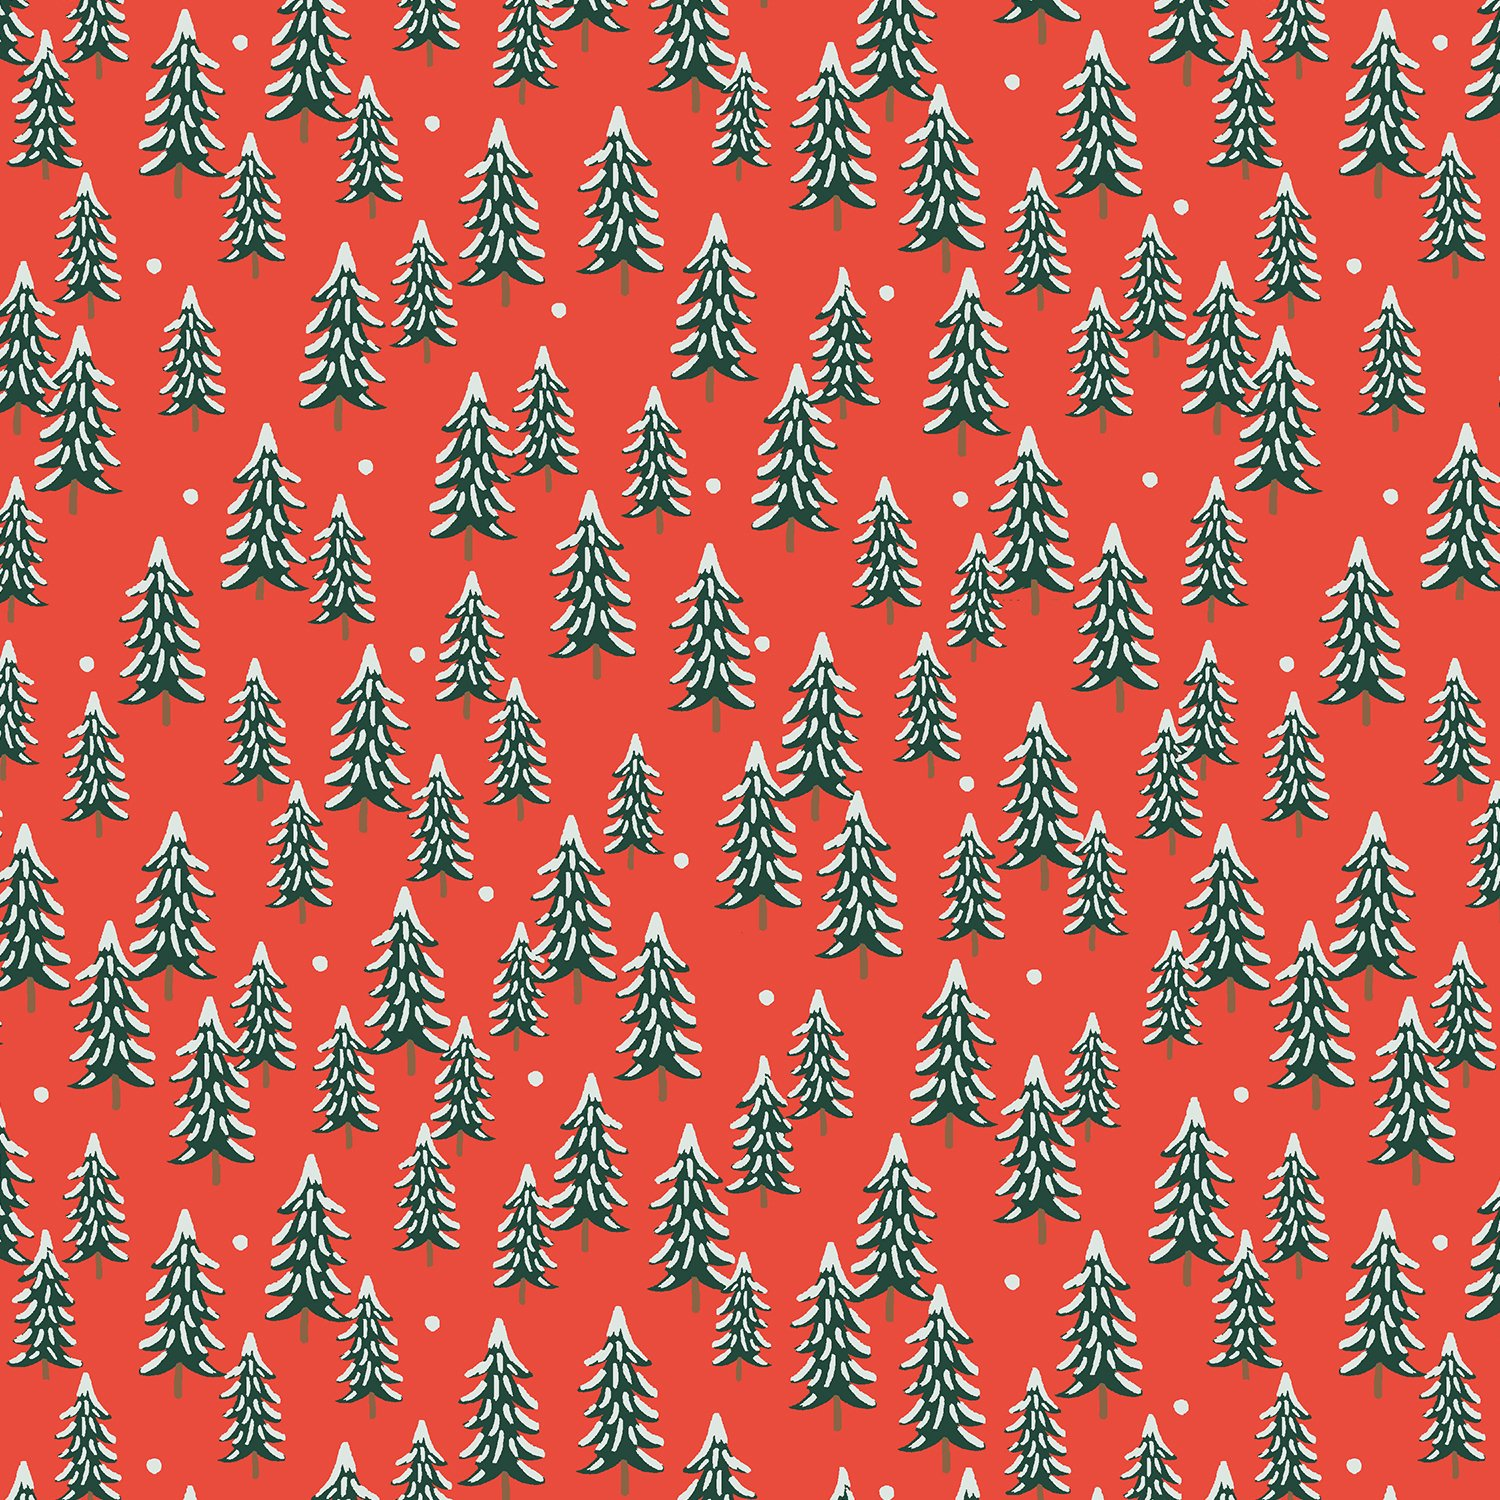 Rifle Paper Holiday Classics - Fir Trees (Red)